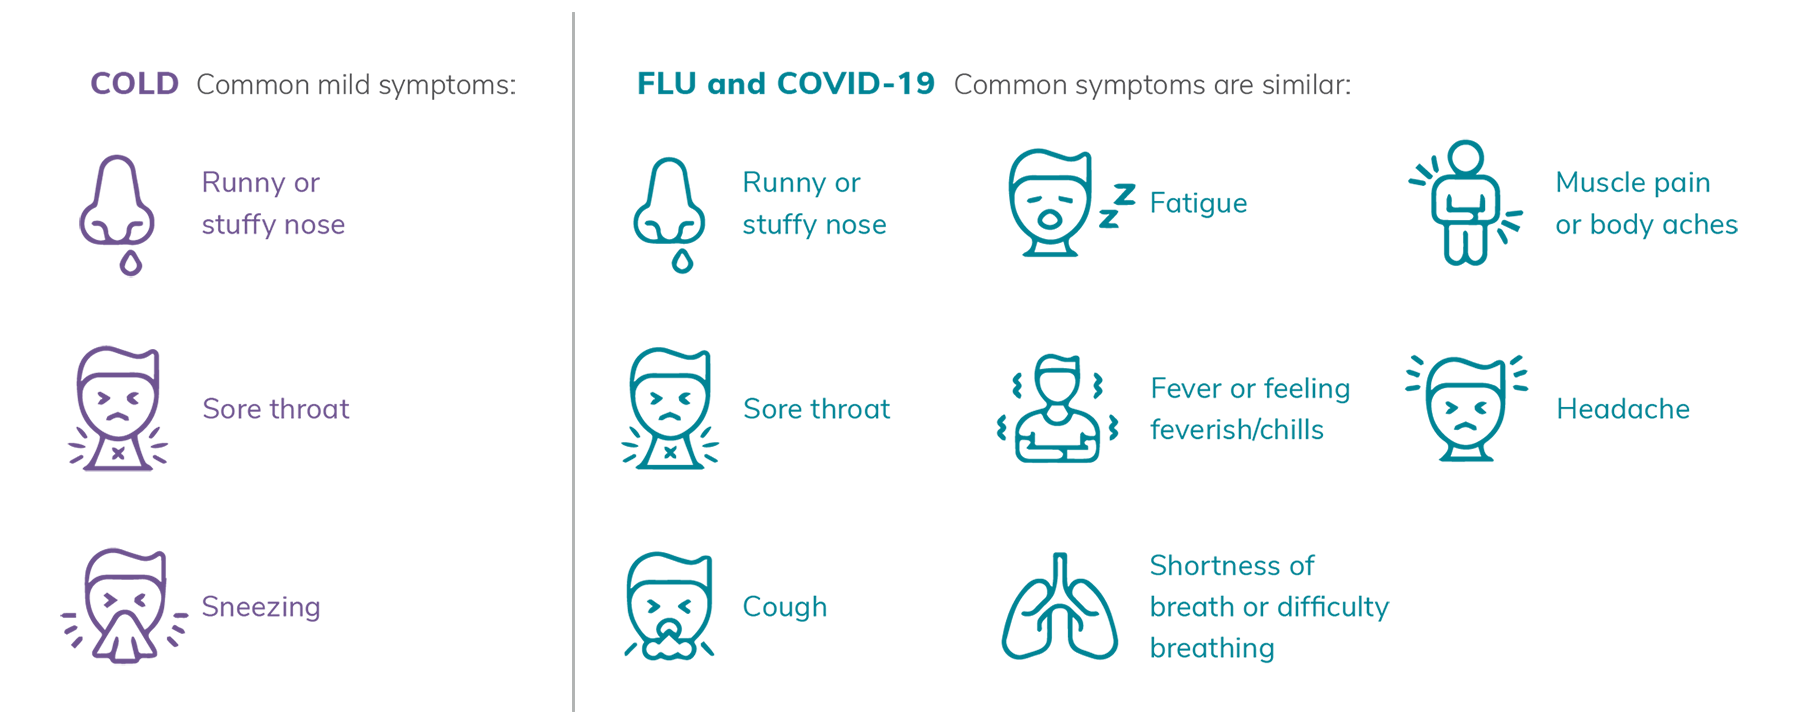 An infographic showing cold, flu and COVID-19 symptoms. Common cold symptoms include: Runny or stuffy nose, sore throat, and sneezing. Flu and COVID-19 common symptoms are similar and may include runny or stuffy nose, sore throat, cough, fatigue, fever or feeling feverish/chills, shortness of breath or difficulty breathing, muscle pain or body aches, and headache.